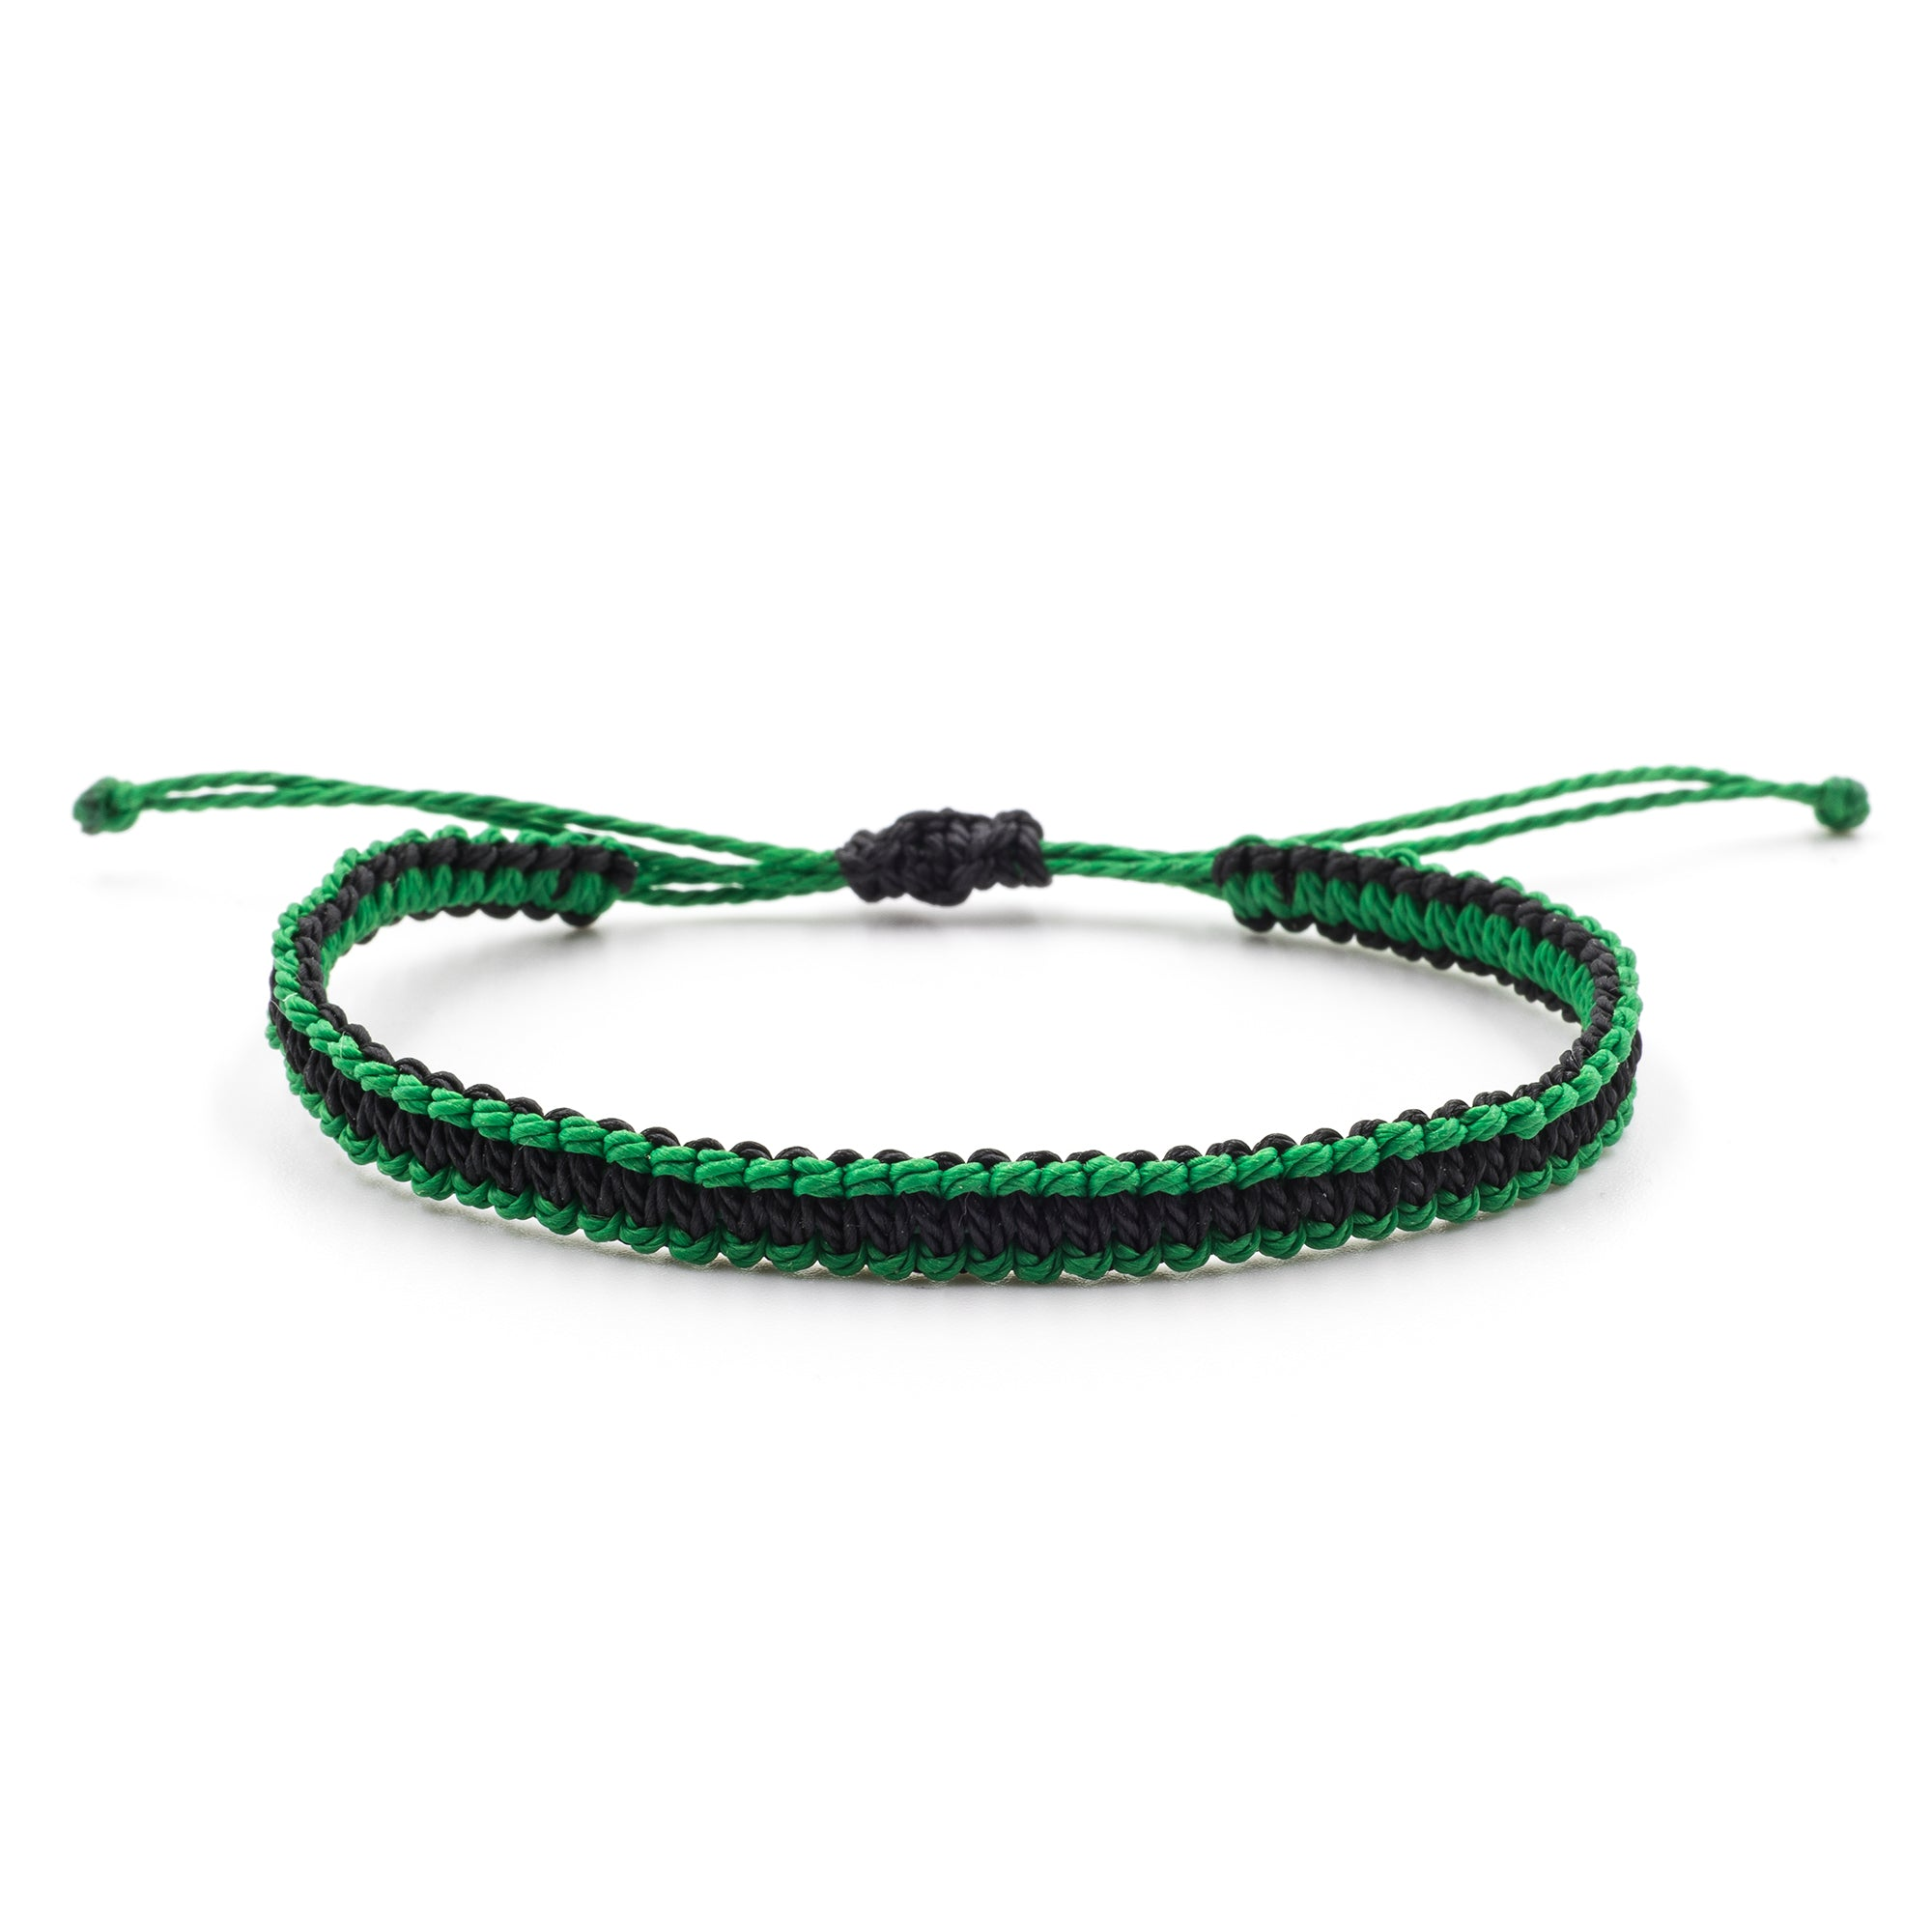 Tree bracelet green, black